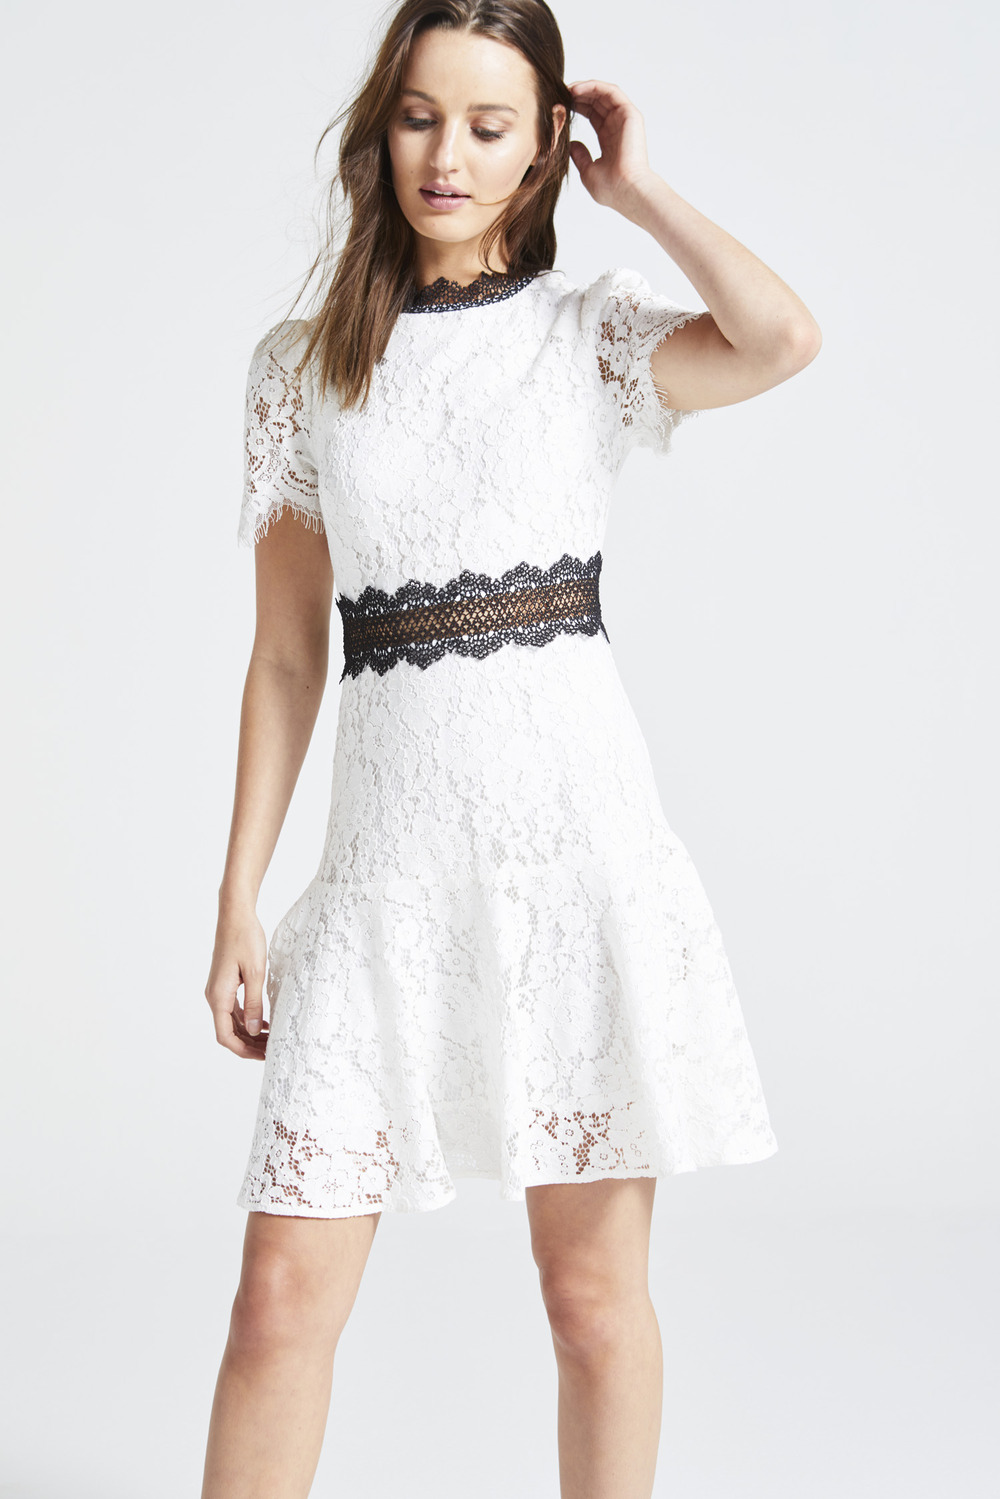 b7f151bb5033 White Lace Dress With Black Details